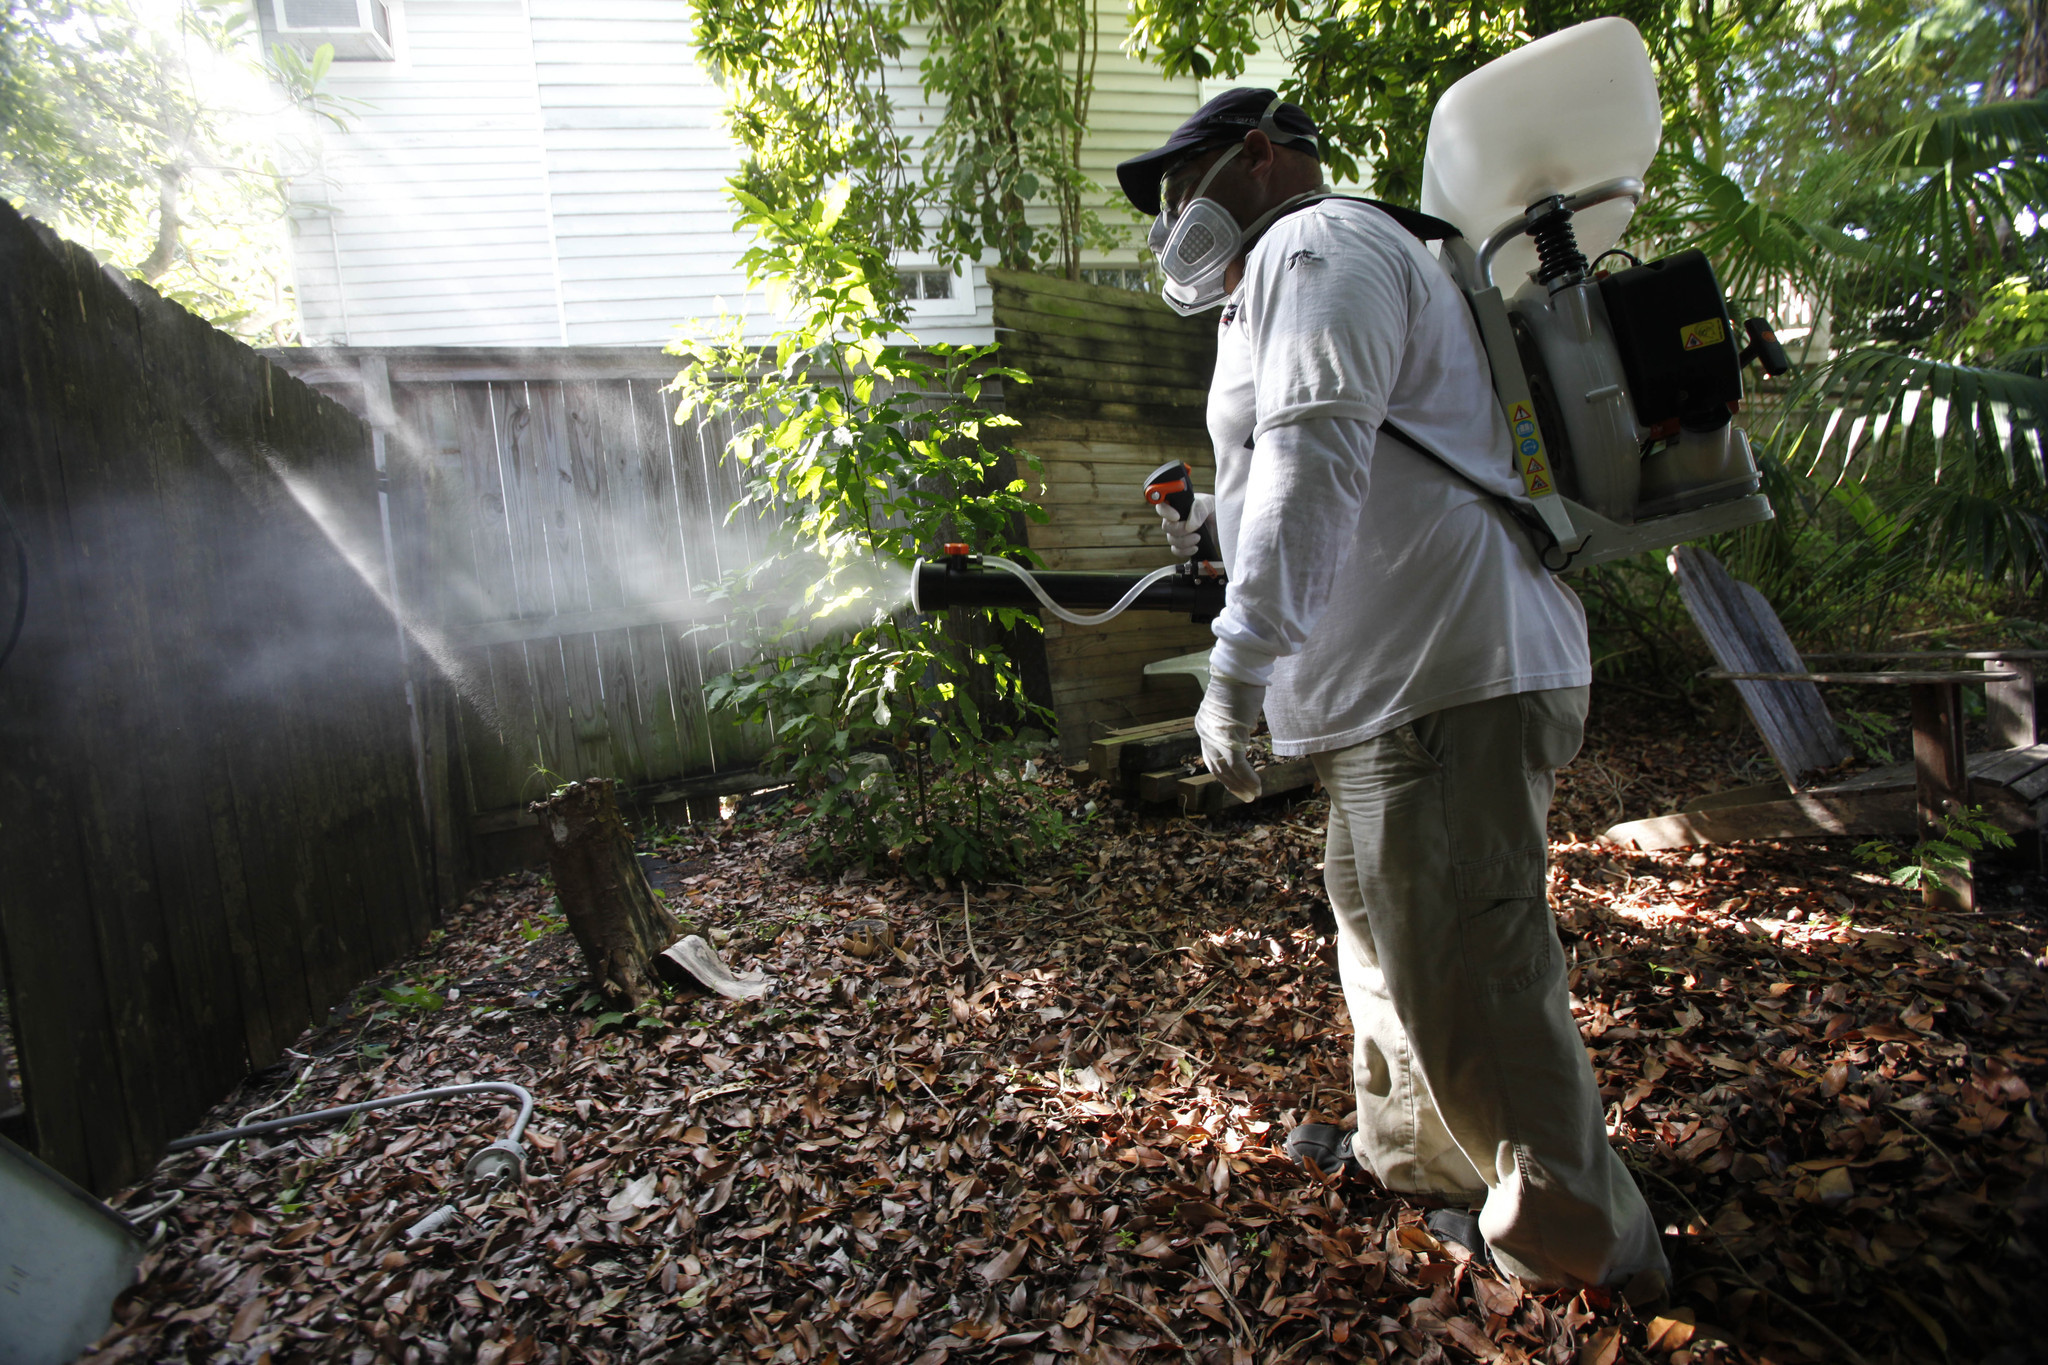 Florida Keys: Millions of genetically modified mosquitoes could be released to help combat viral diseases